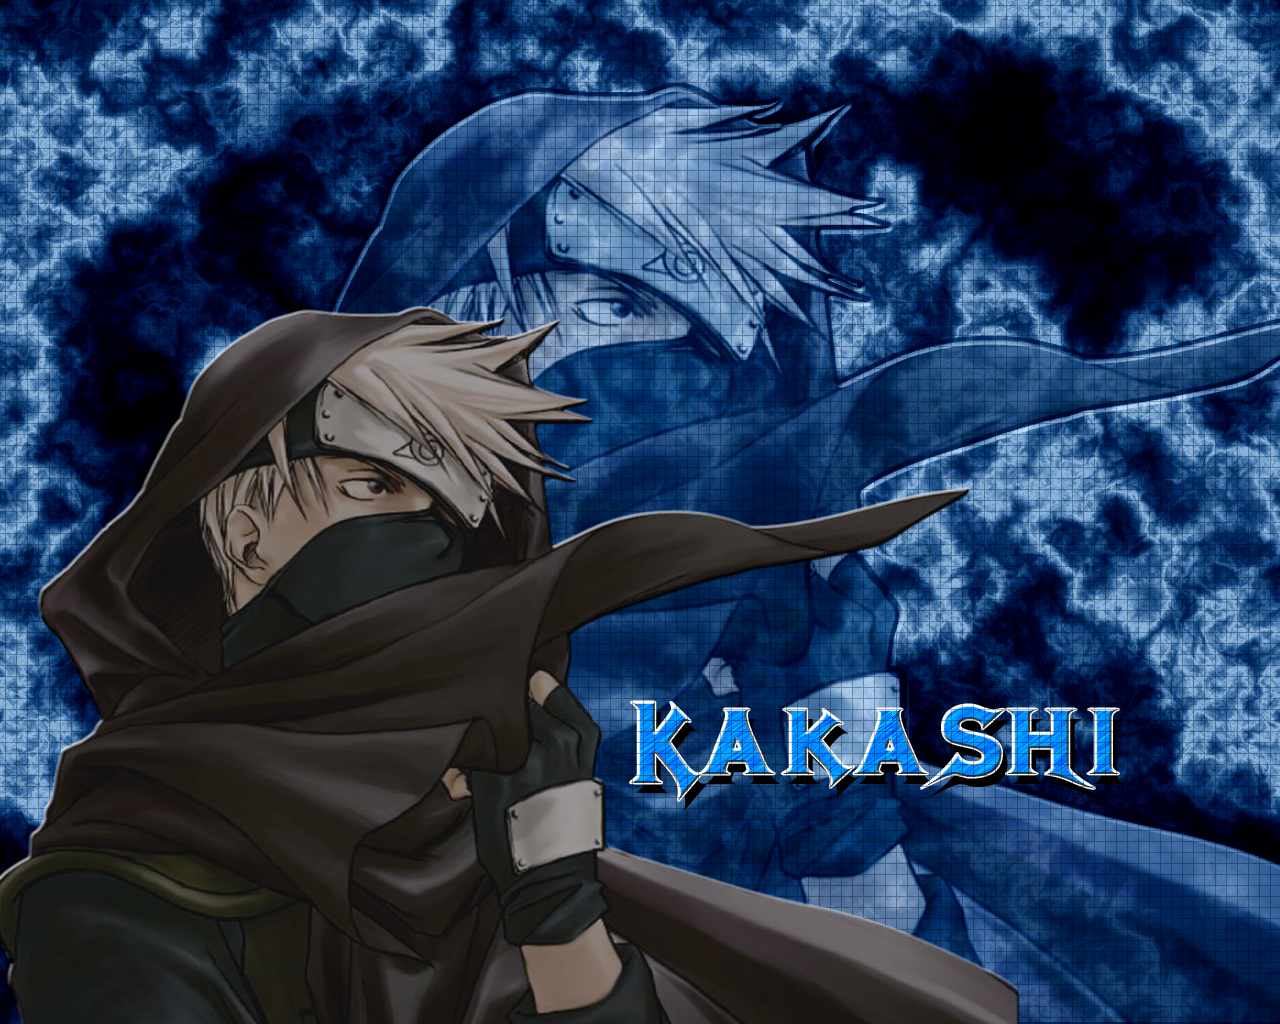 Kakashi Wallpaper by Djman5000 on deviantART 1280x1024